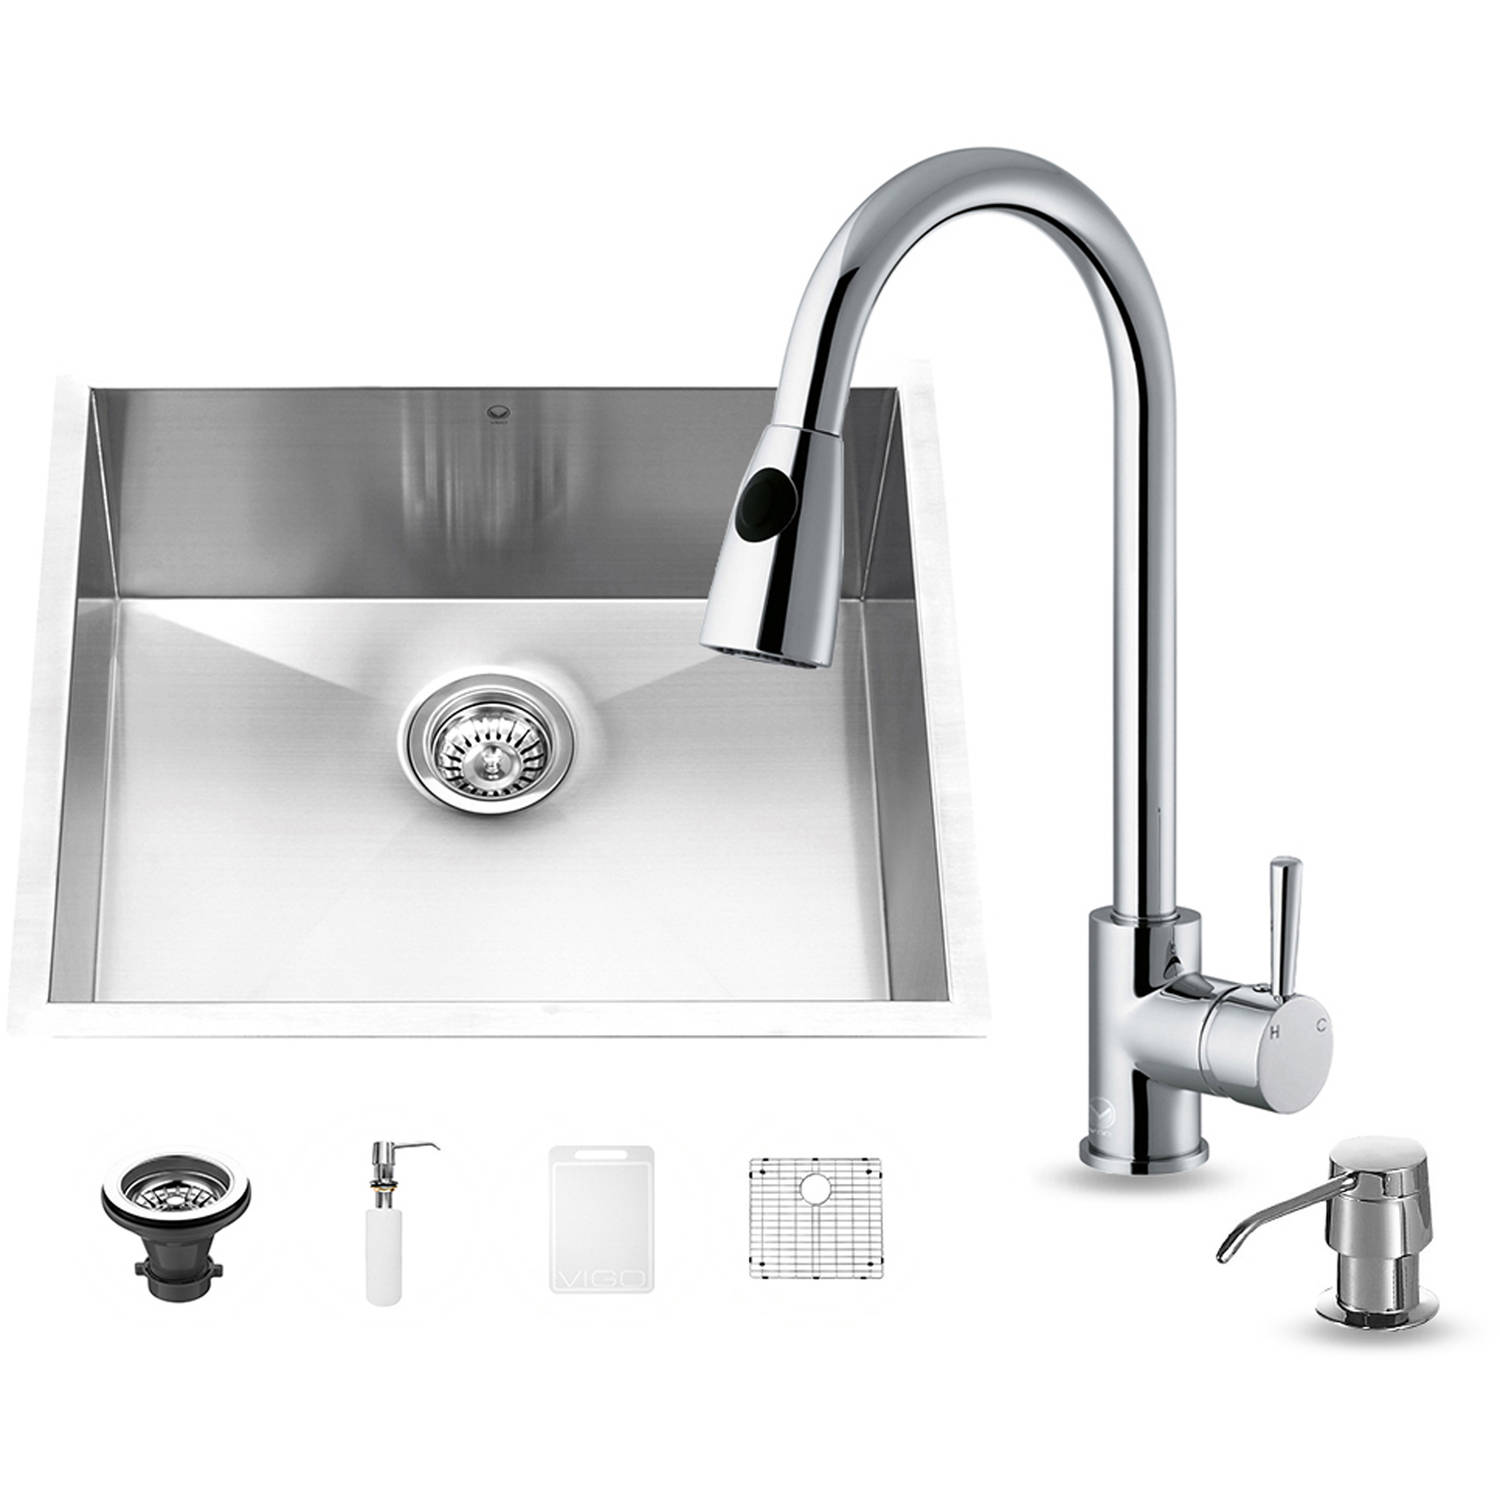 "Vigo All-in-One 23"" Undermount Stainless Steel Kitchen Sink and Chrome Faucet Set"